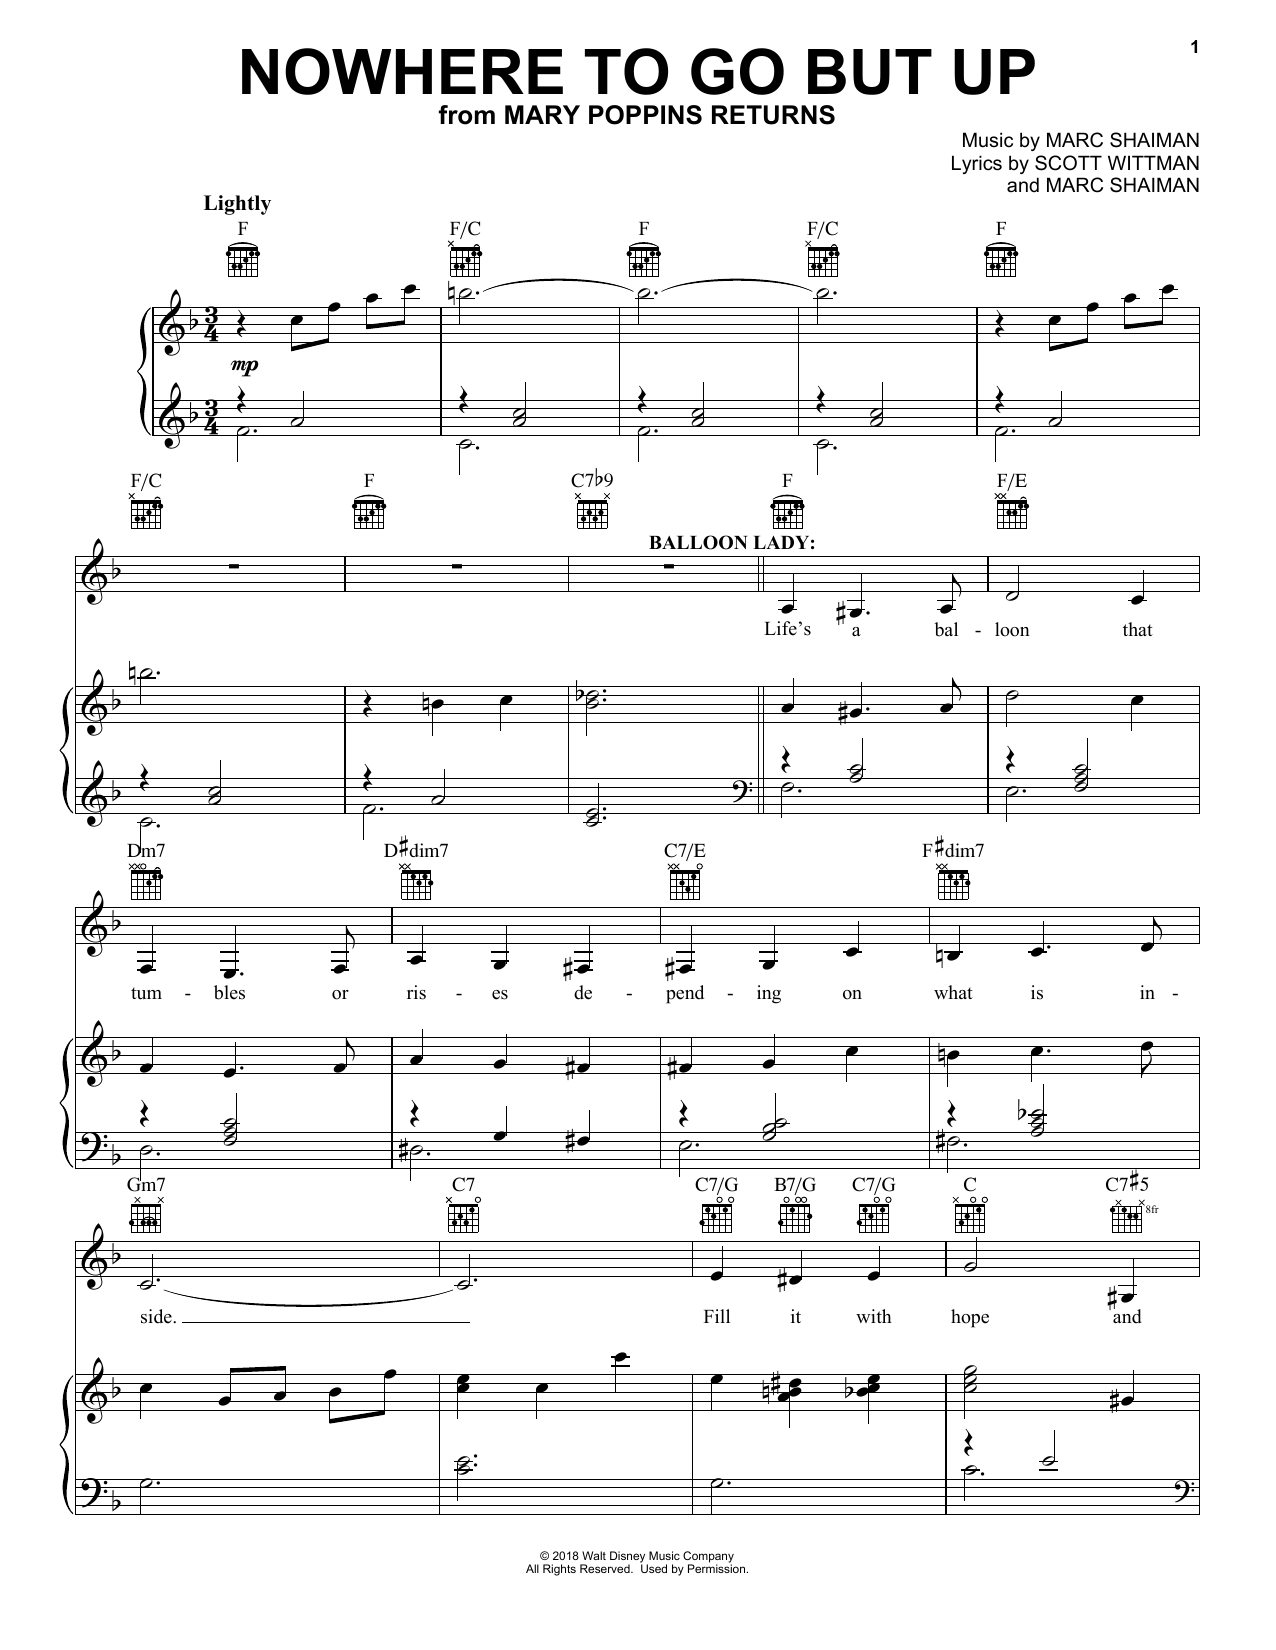 Angela Lansbury & Company Nowhere To Go But Up (from Mary Poppins Returns) sheet music notes and chords